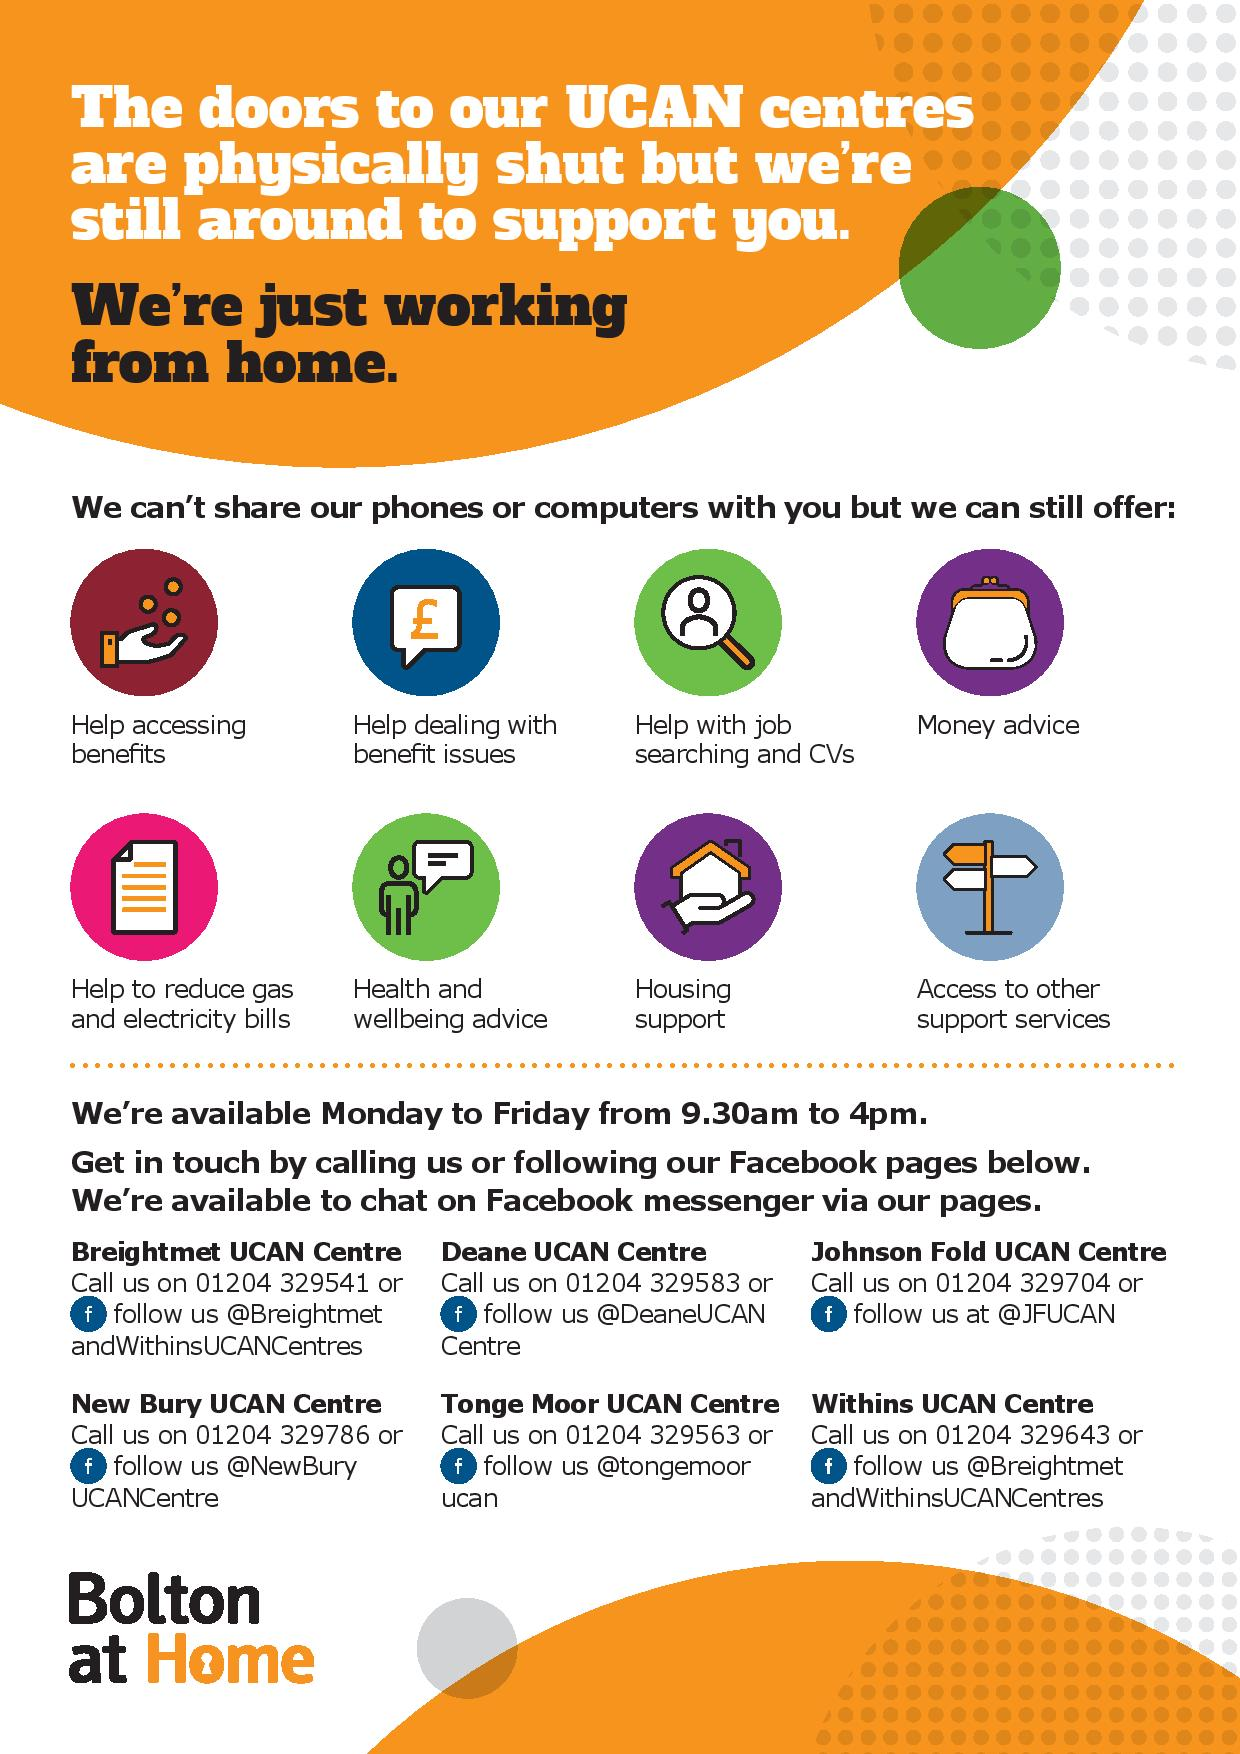 A poster detailing the services on offer from our UCAN teams even whilst our centres are shut. They can help with accessing benefits, job searching and CVs, reducing electricity bills, health/wellbeing advice, and housing support.